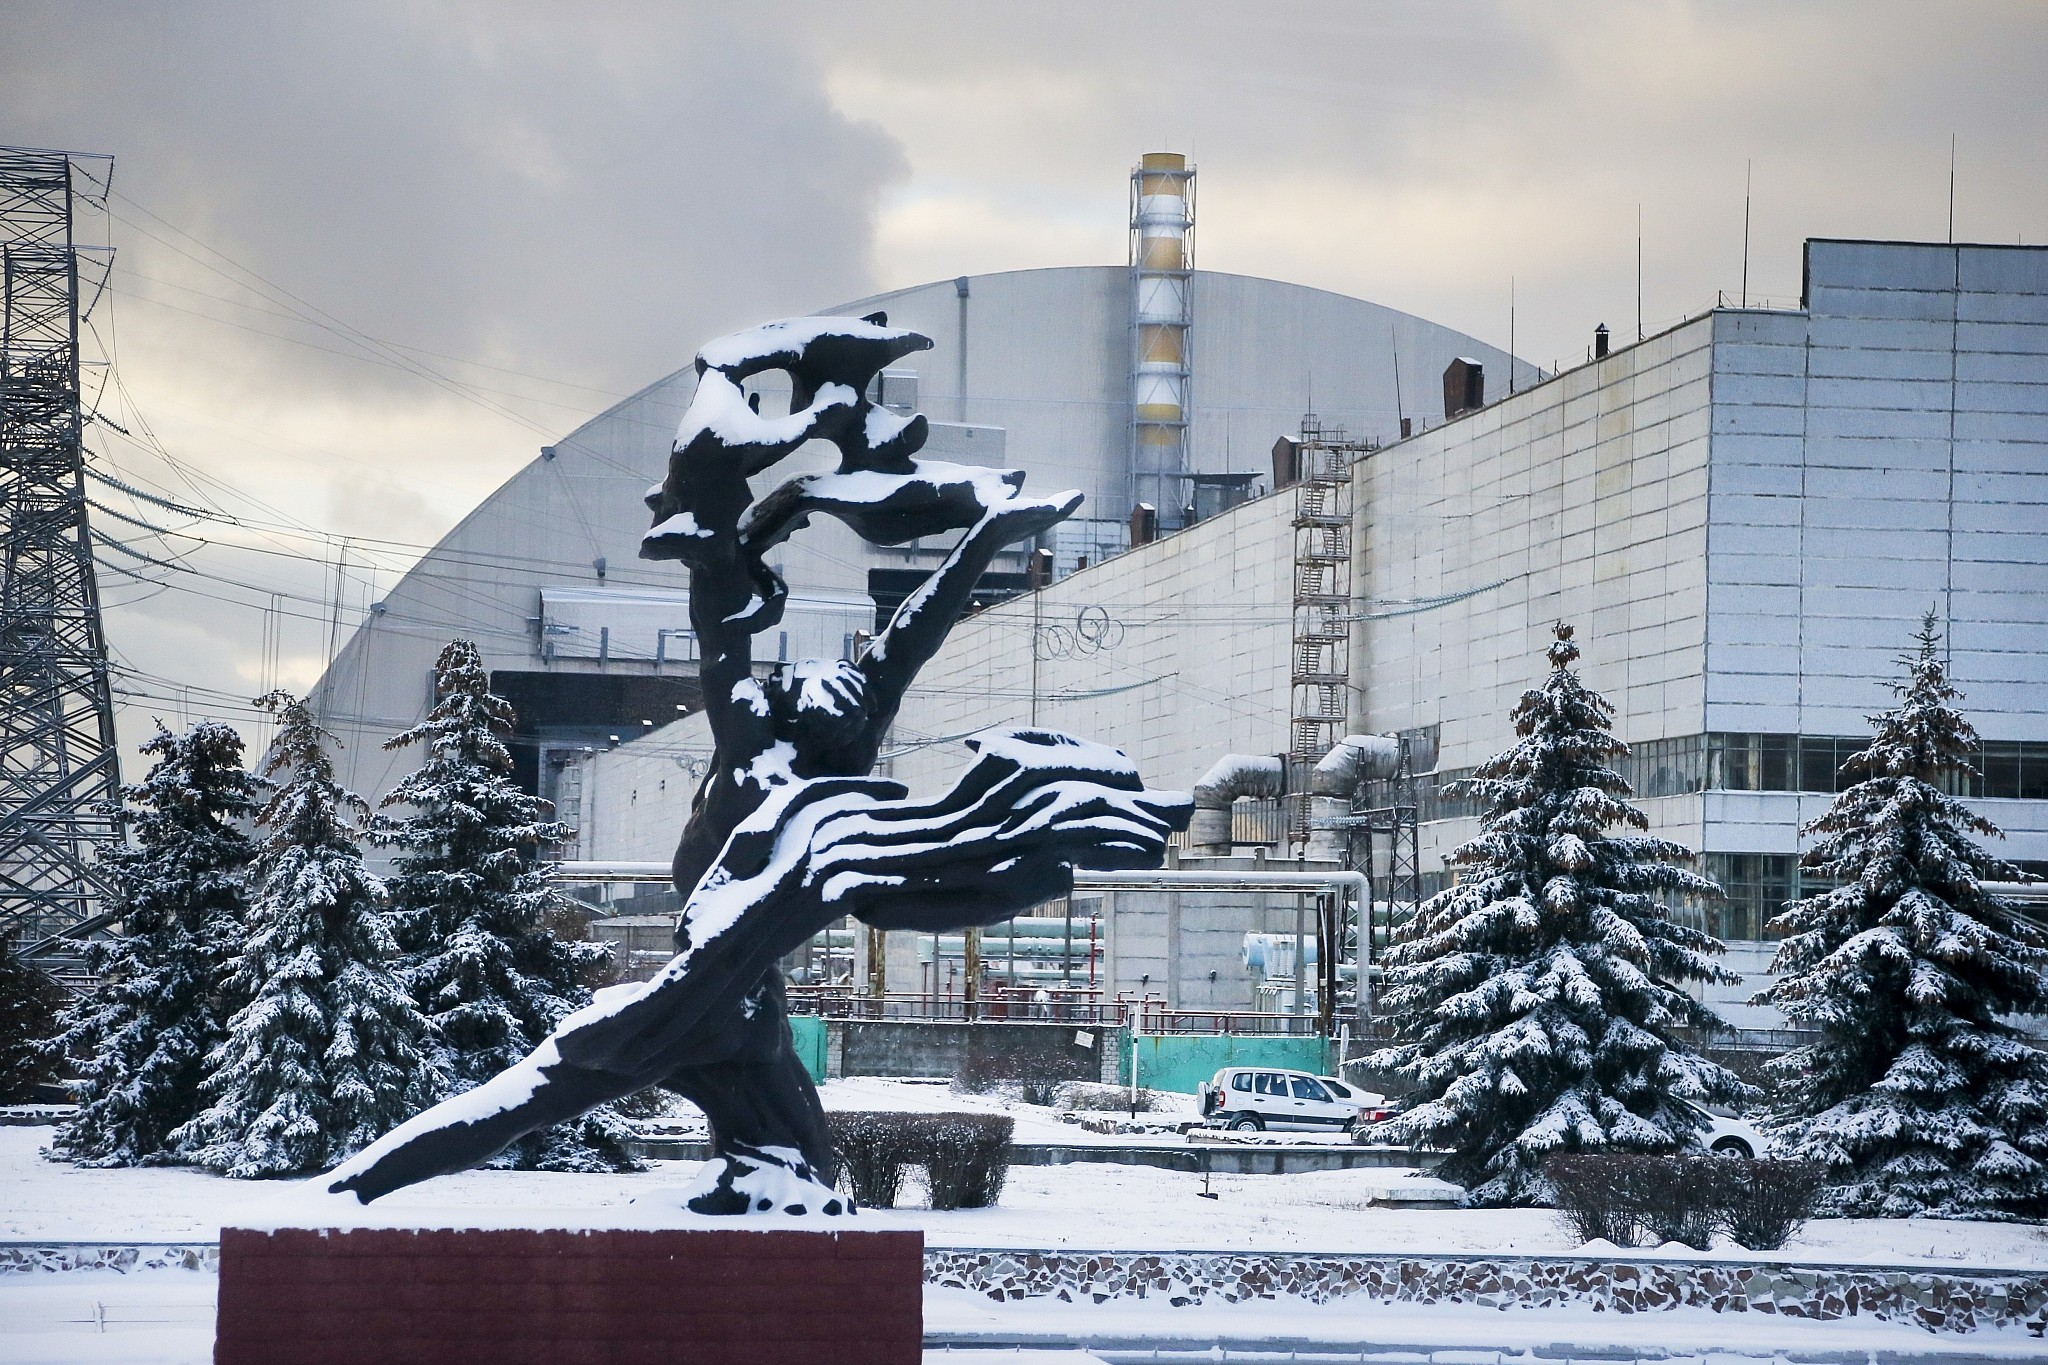 """A monument to the victims of the Chernobyl tragedy in front of the """"safe confinement shelter"""" installed over the exploded reactor at the Chernobyl nuclear plant, Chernobyl, Ukraine, Nov. 29, 2016. The newly completed shelter was one of the most ambitious engineering projects in the world. (AP Photo/Efrem Lukatsky)"""